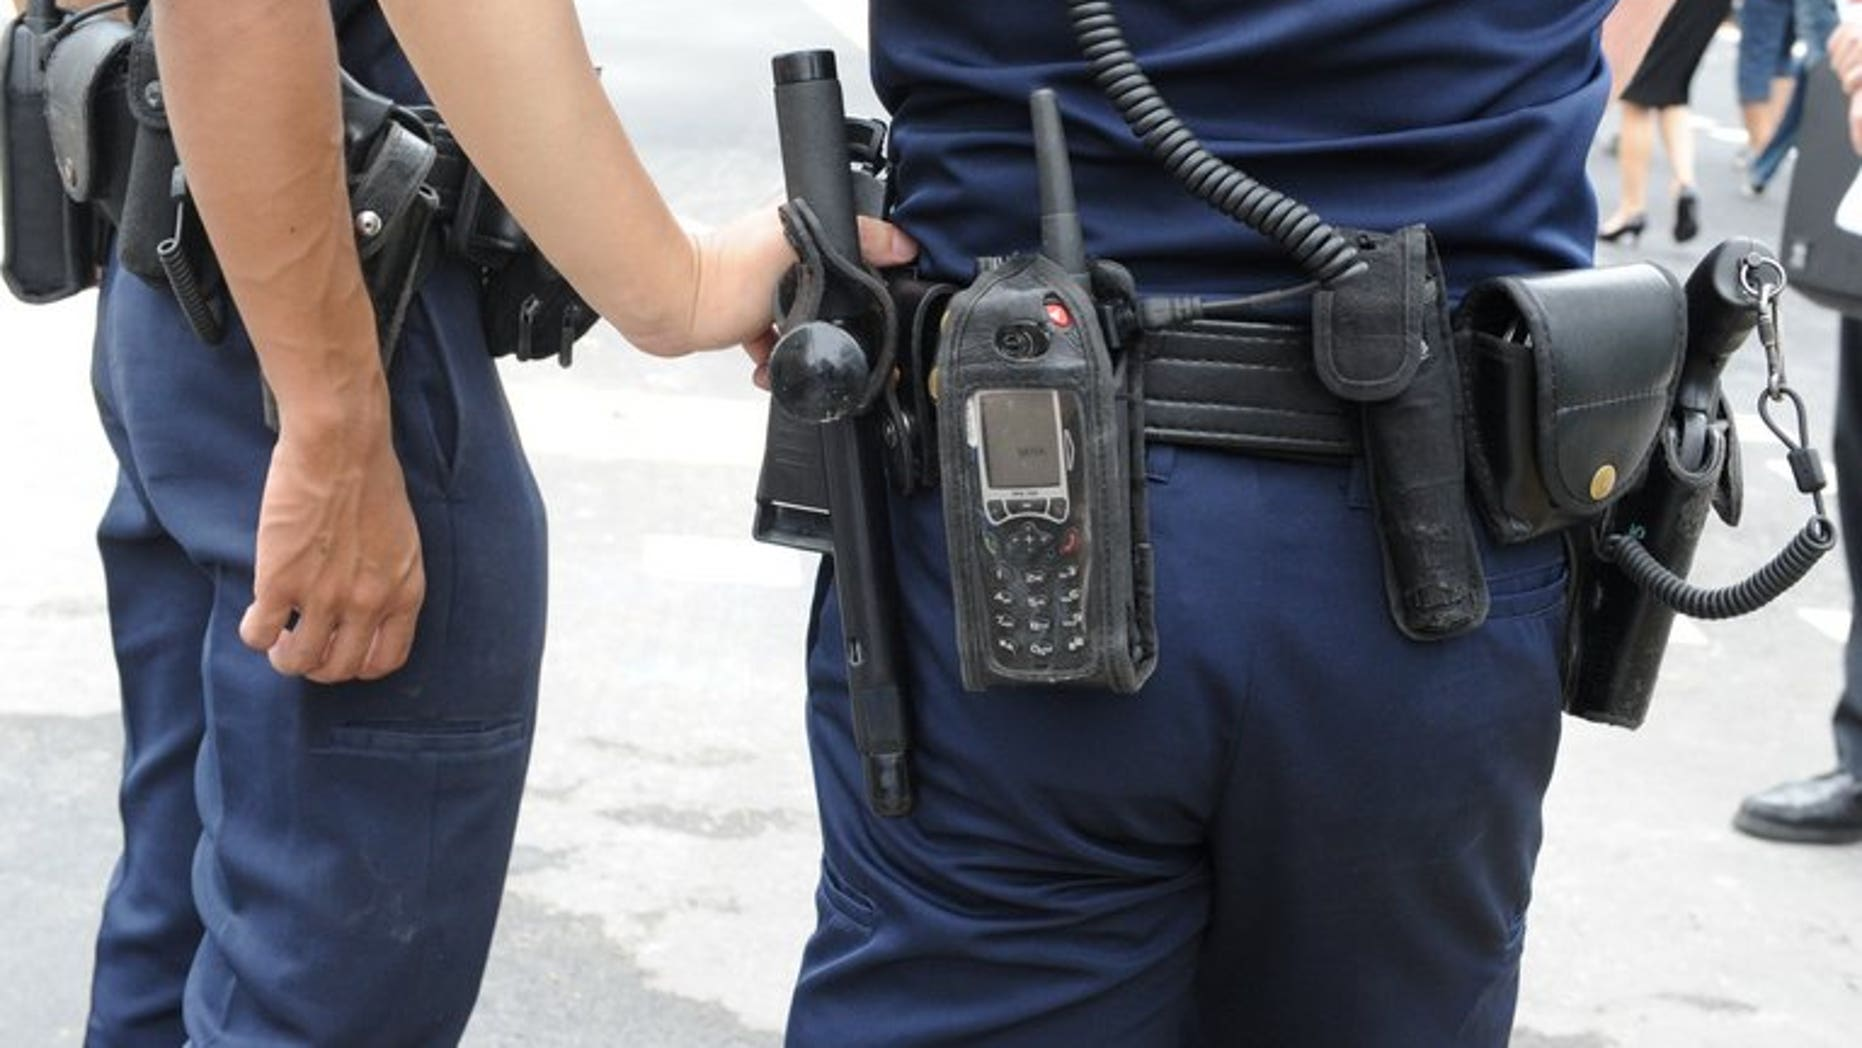 Police officers at work in Singapore on July 18, 2012. A Singapore cartoonist facing jail time over satirical comic strips depicting the city-state's courts as biased had proceedings against him dropped on Tuesday after he made an official apology.